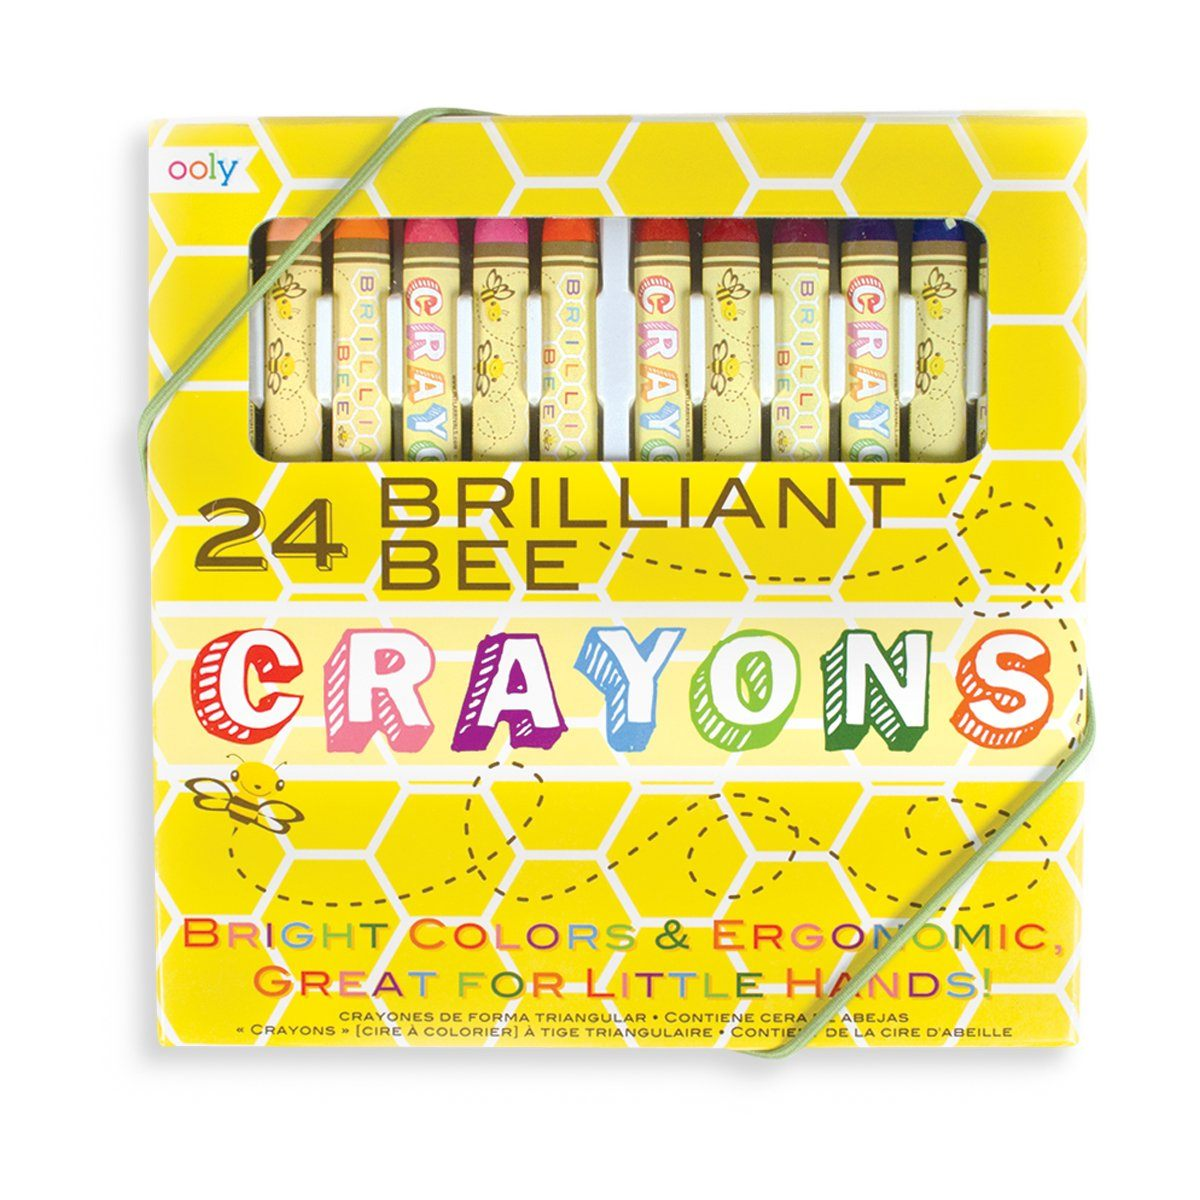 Ooly Brilliant Bee Crayons (Set of 24)